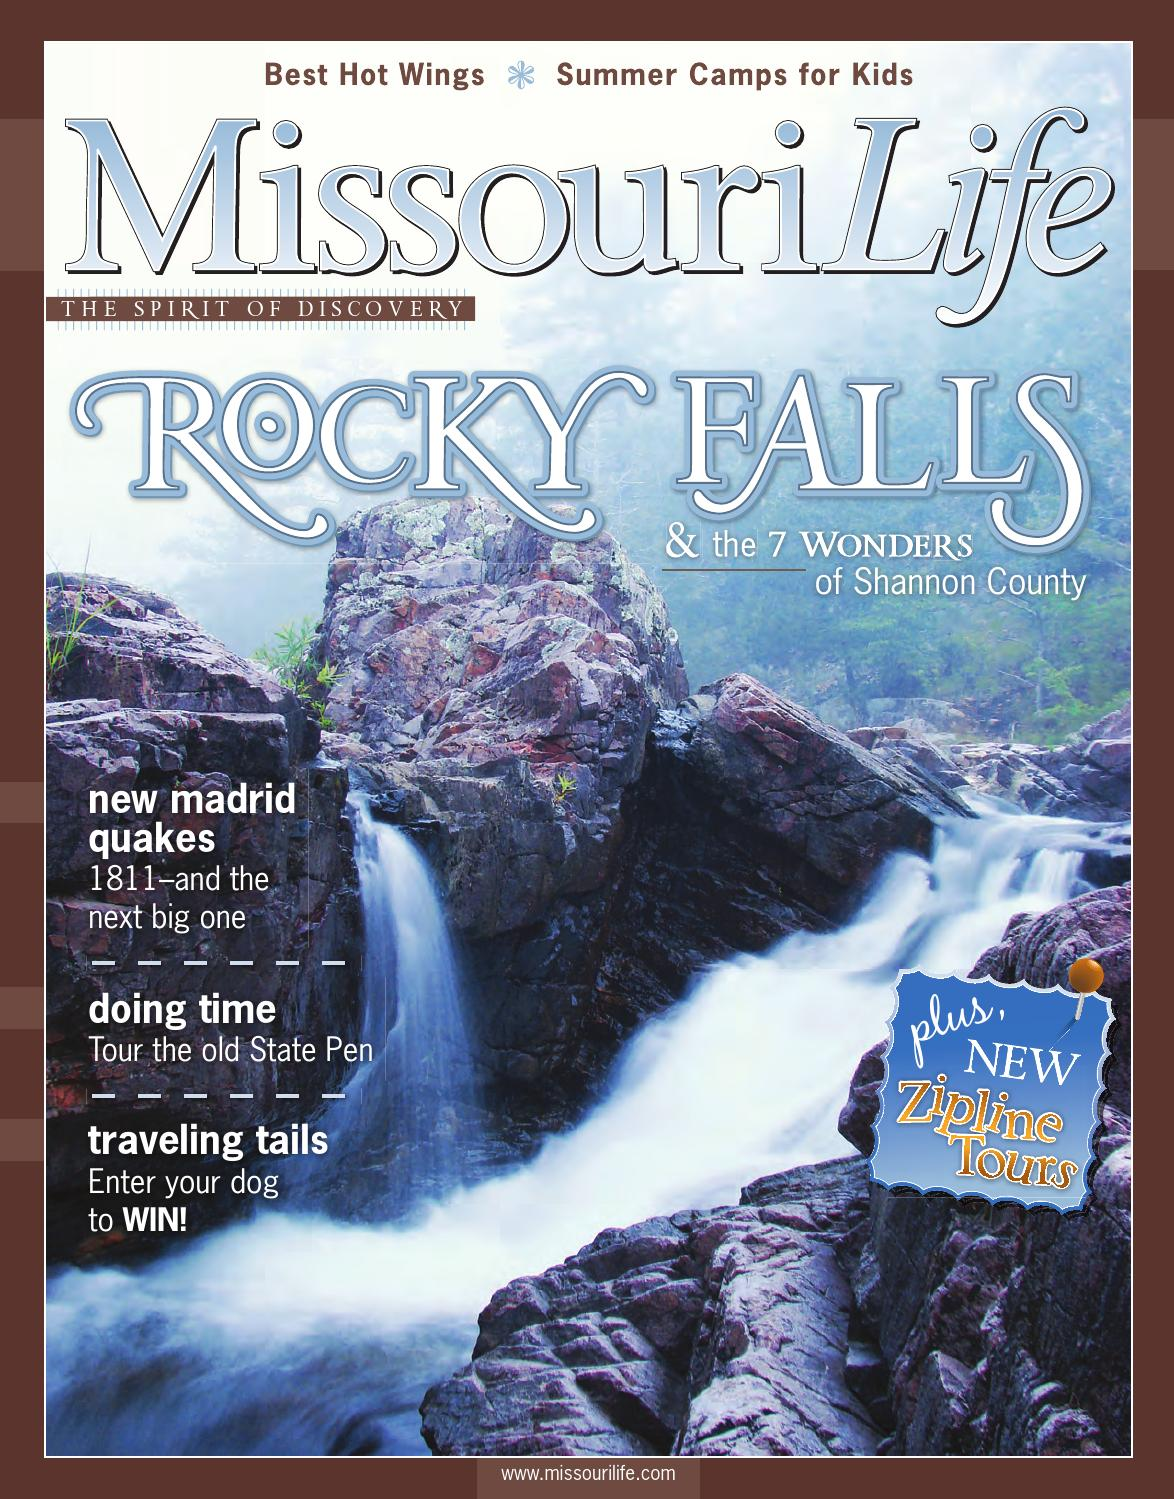 Missouri life aprilmay 2010 by missouri life magazine issuu fandeluxe Image collections